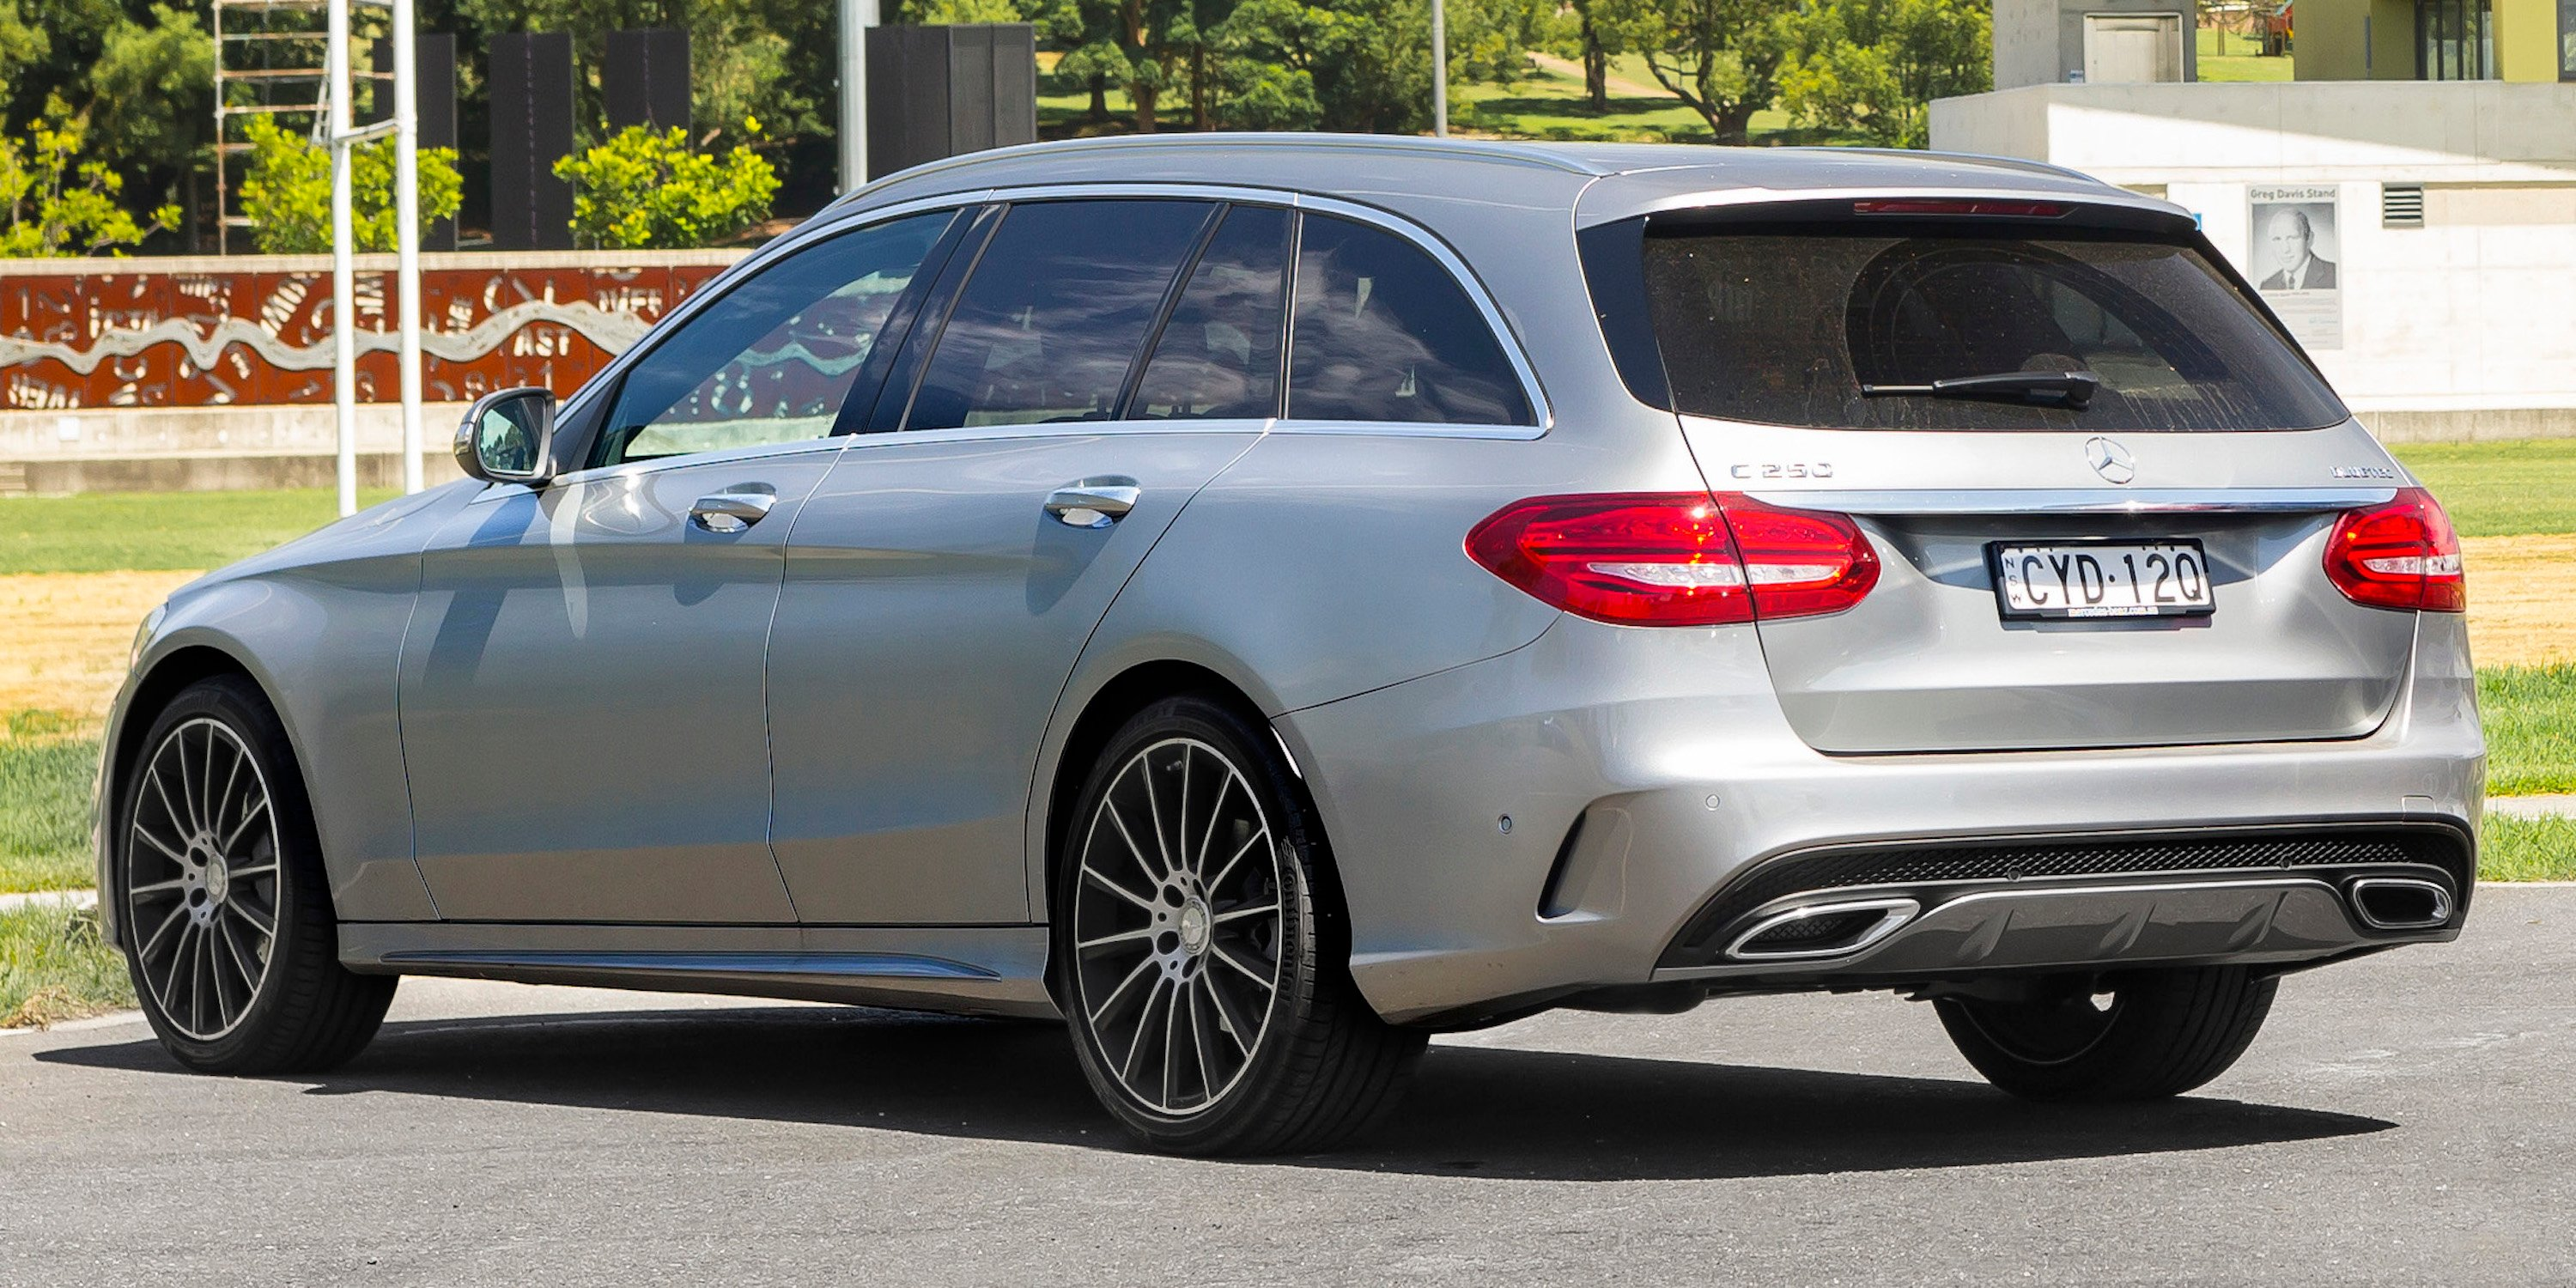 Mercedes benz c250d estate v mercedes benz glc250d 4matic for Mercedes benz estate cars